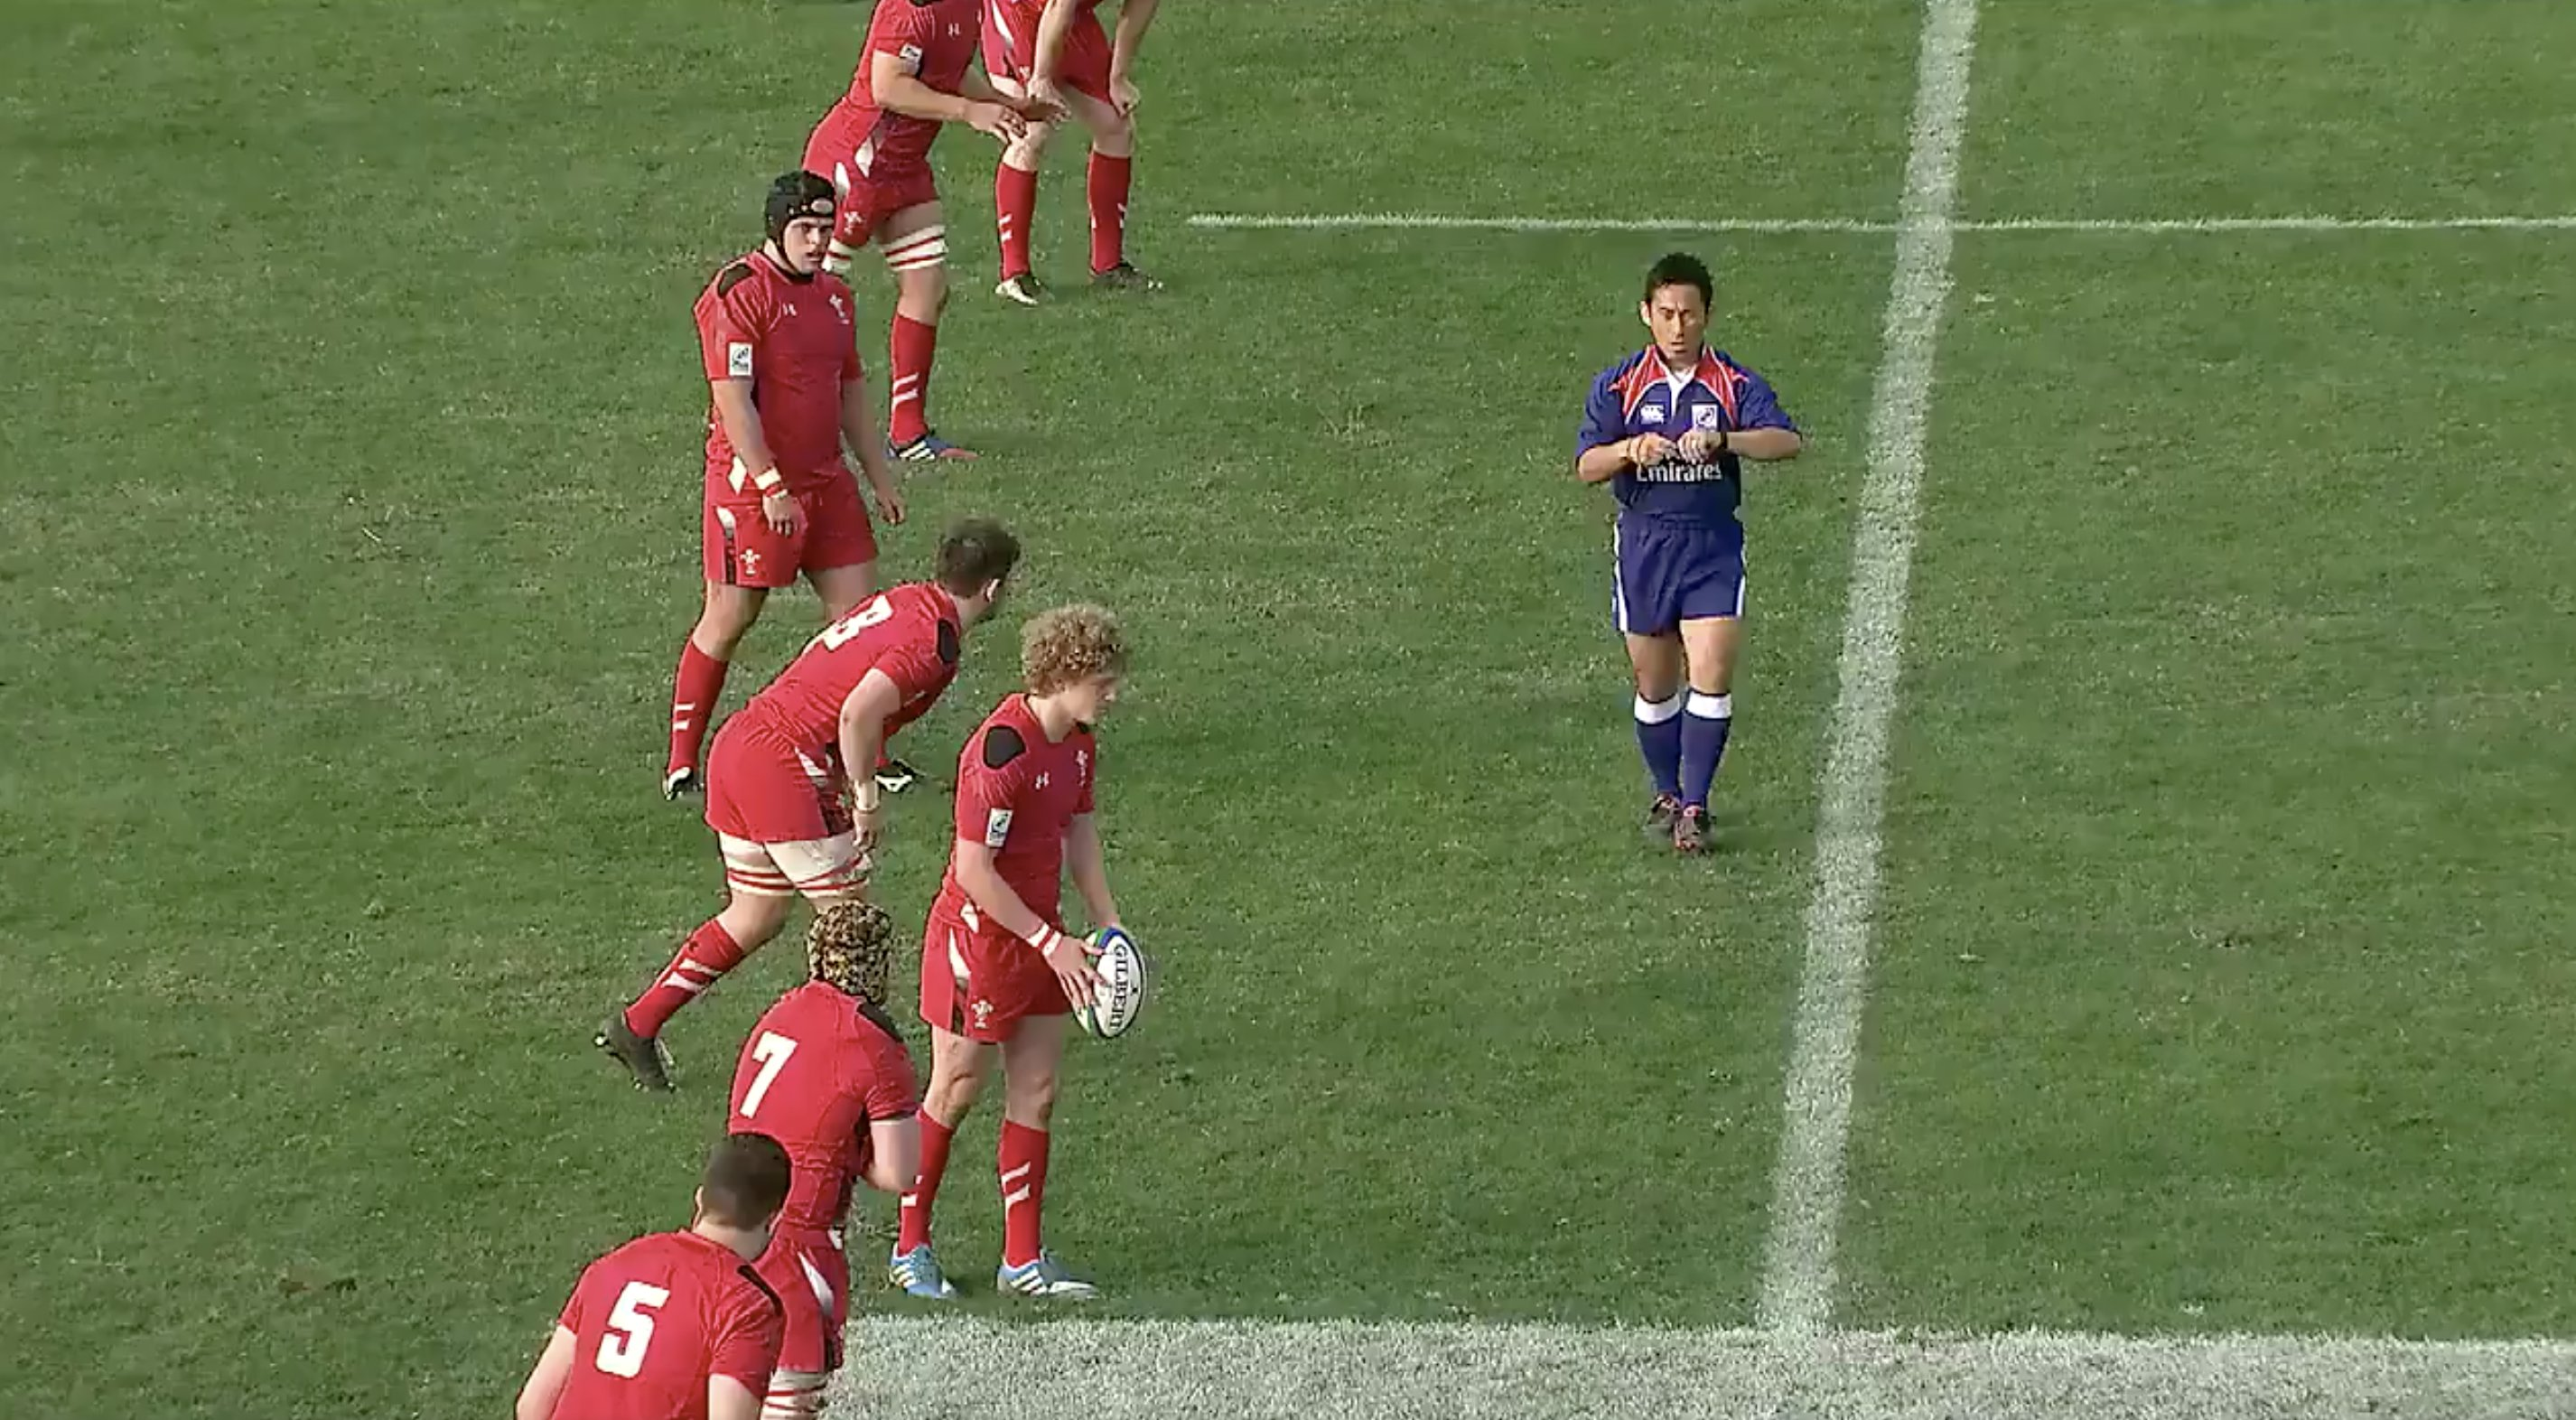 VIDEO: The fastest try in World Rugby EVER has been scored